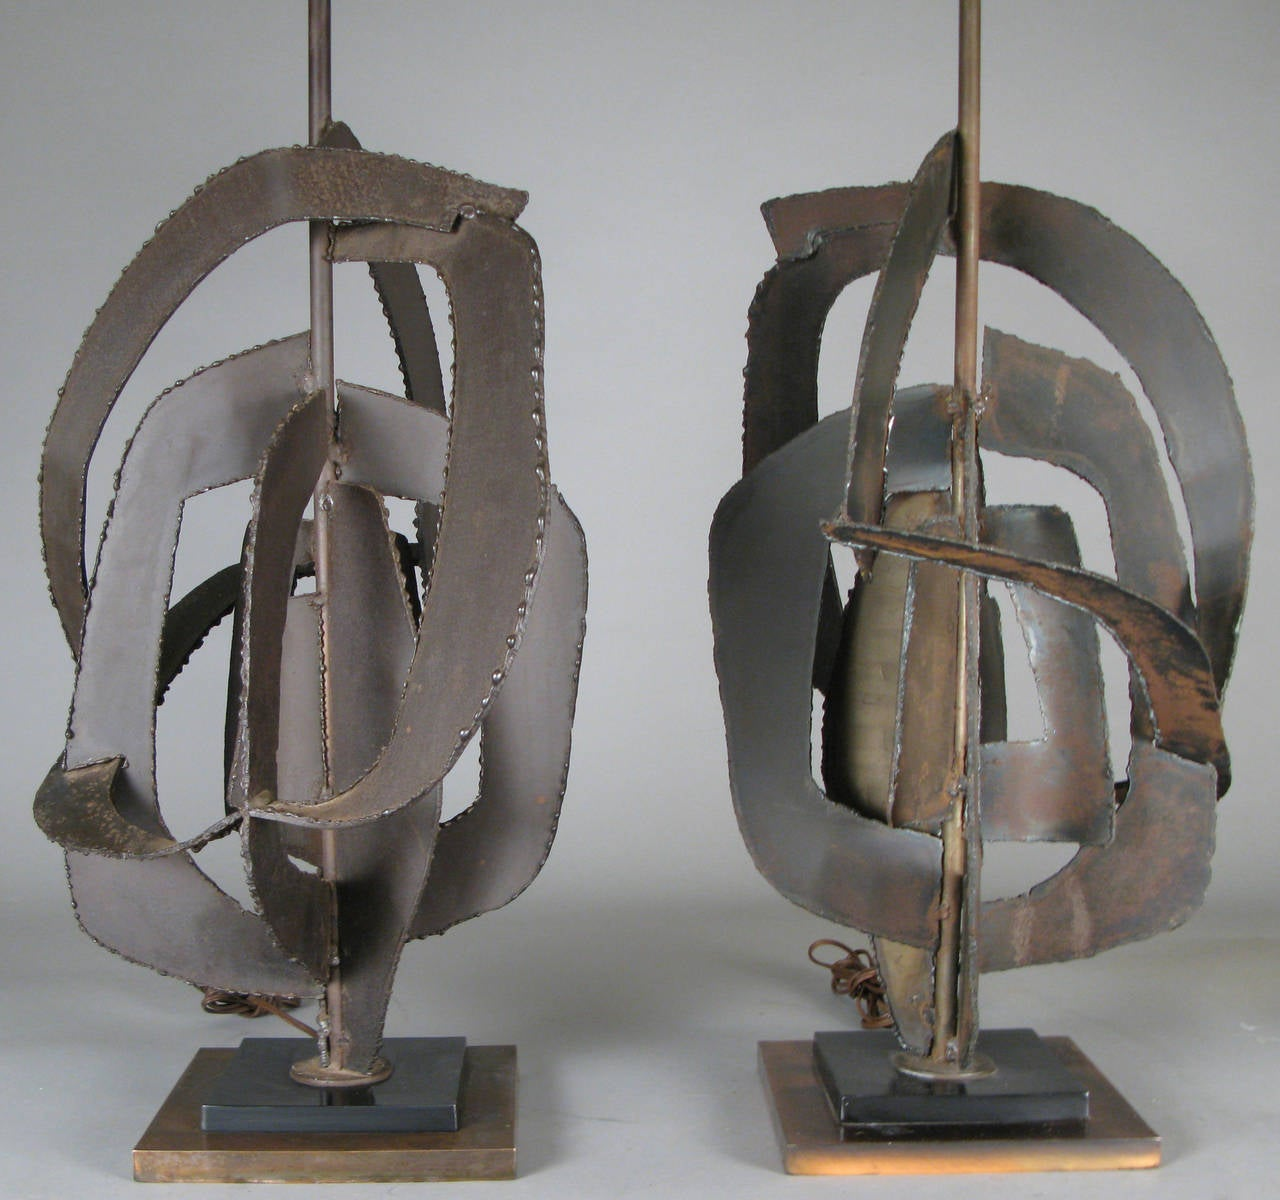 A wonderful pair of vintage 1960s table lamps designed by Harry Balmer for Laurel Lamp Co., made from torch cut steel and iron in an open abstract form, on a steel and copper base. Shades not included.